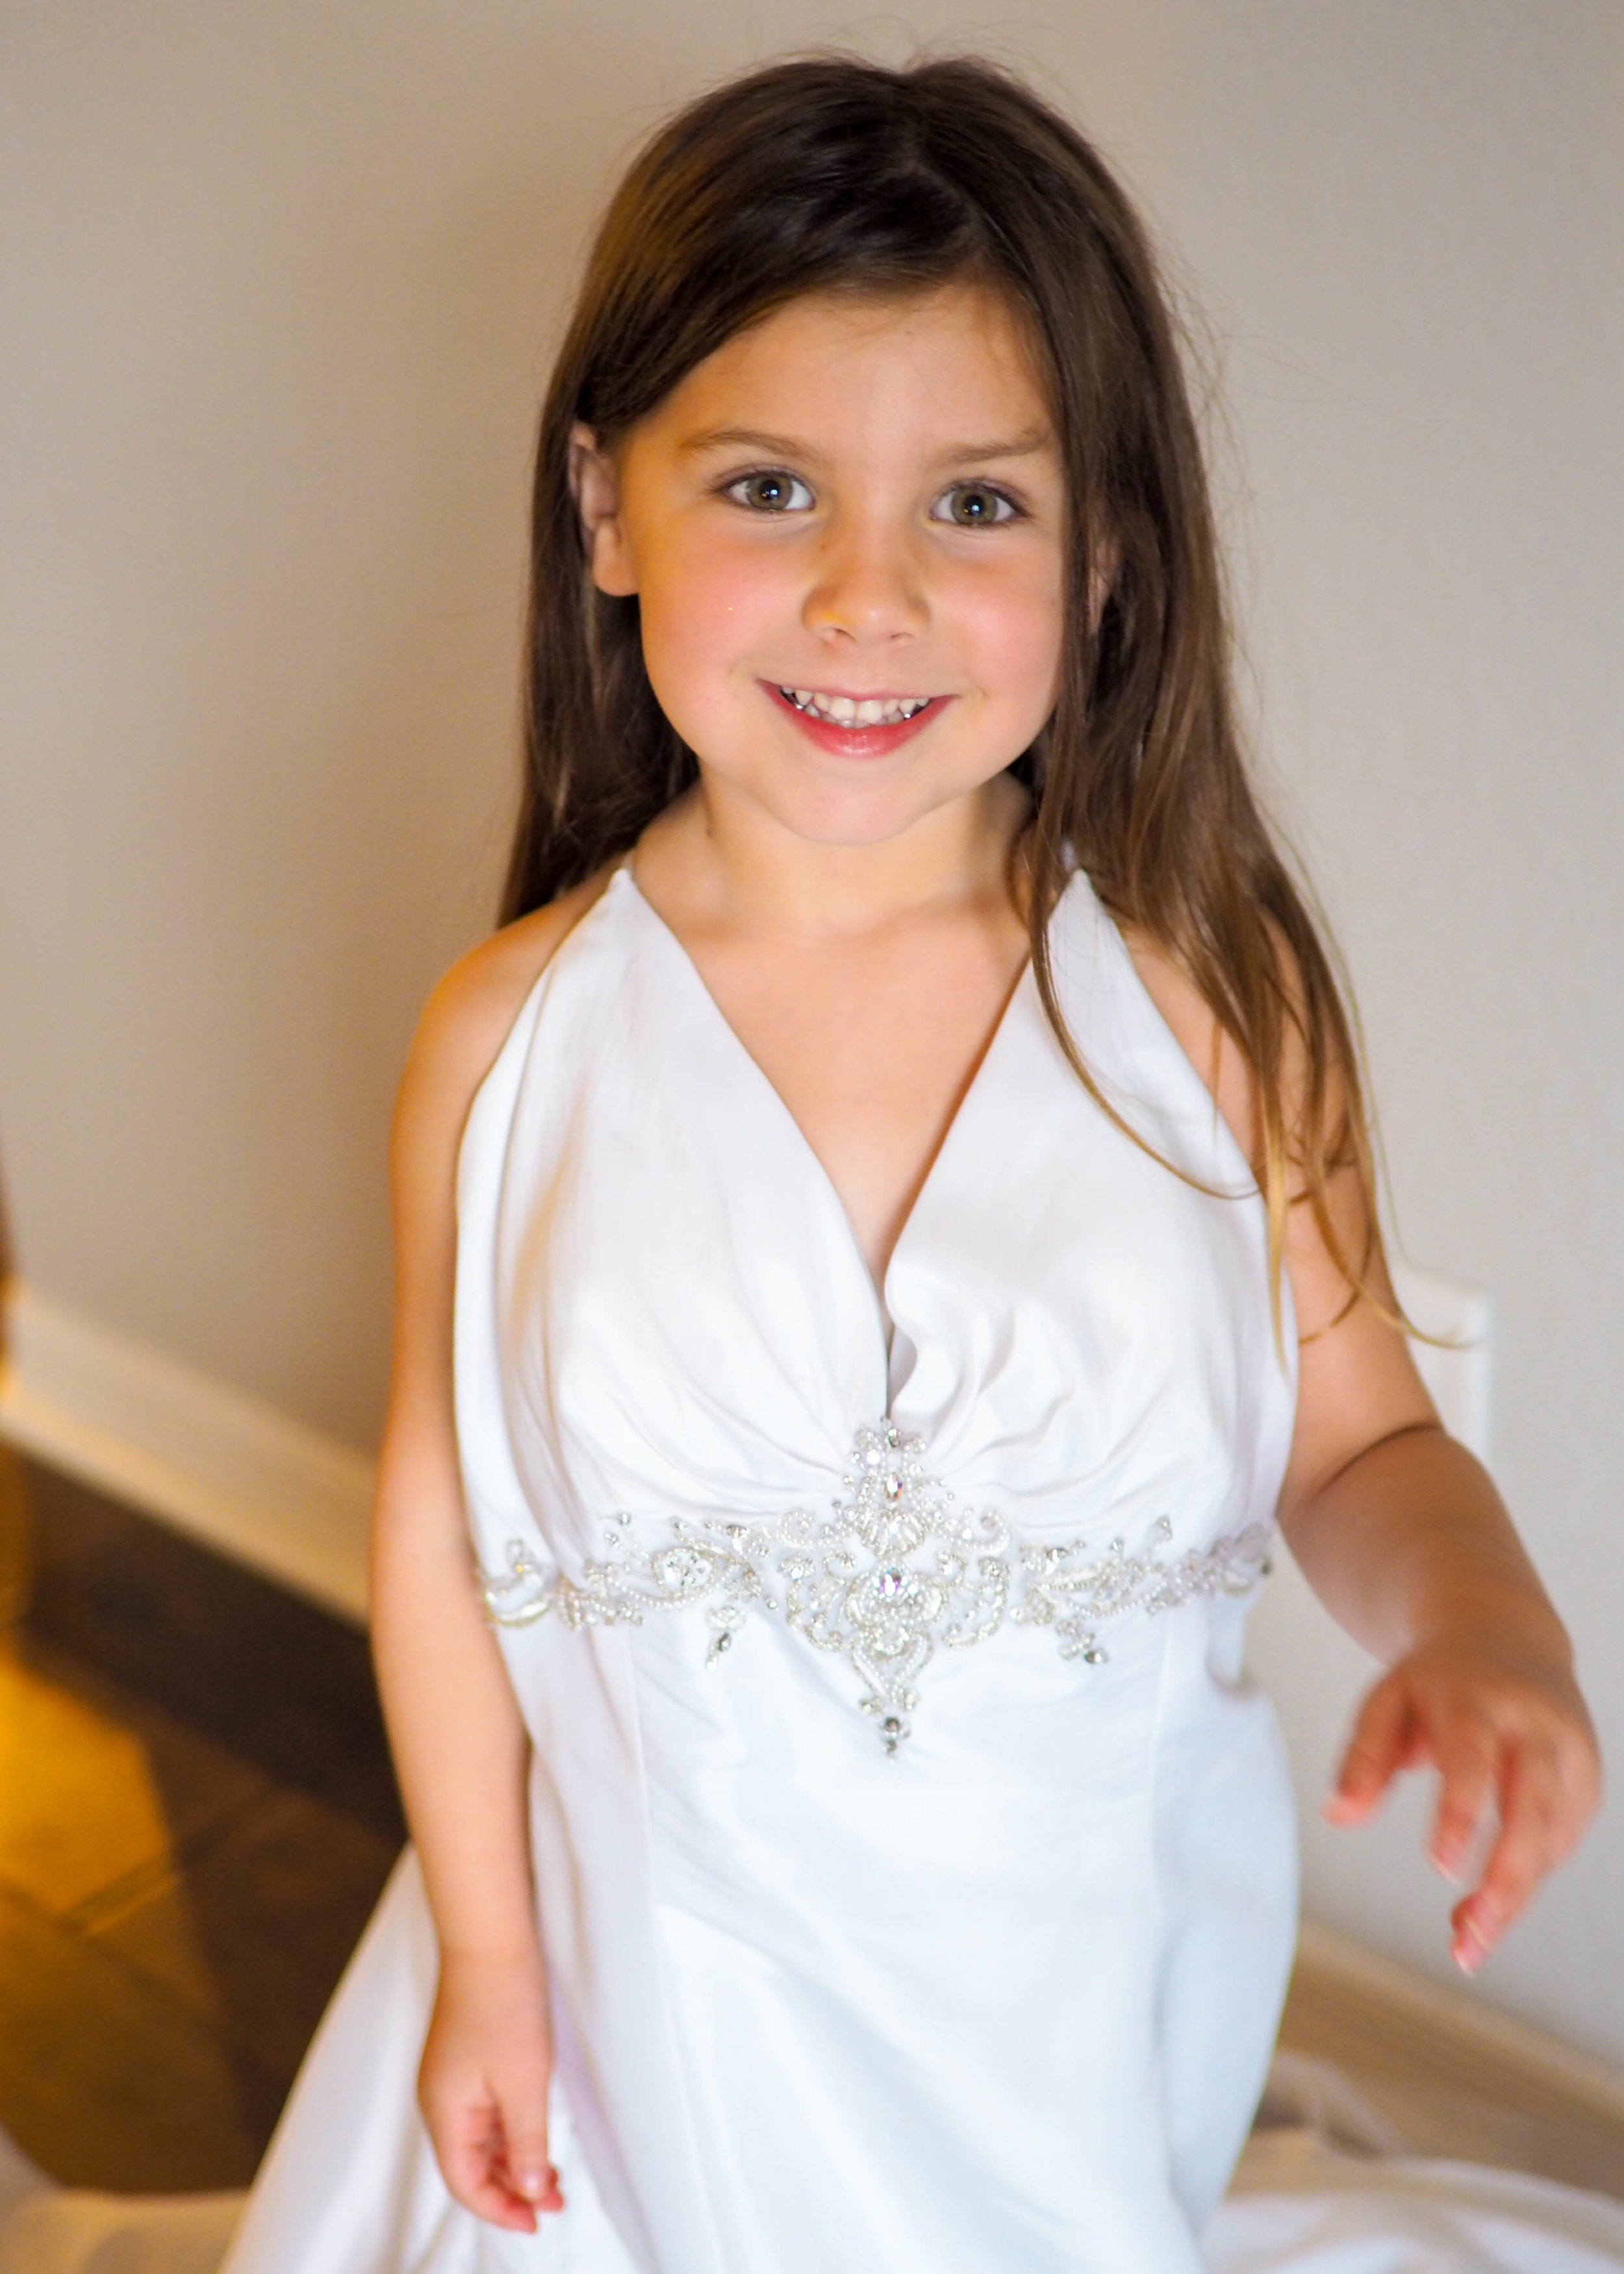 She loves wearing my wedding dress around the house <3